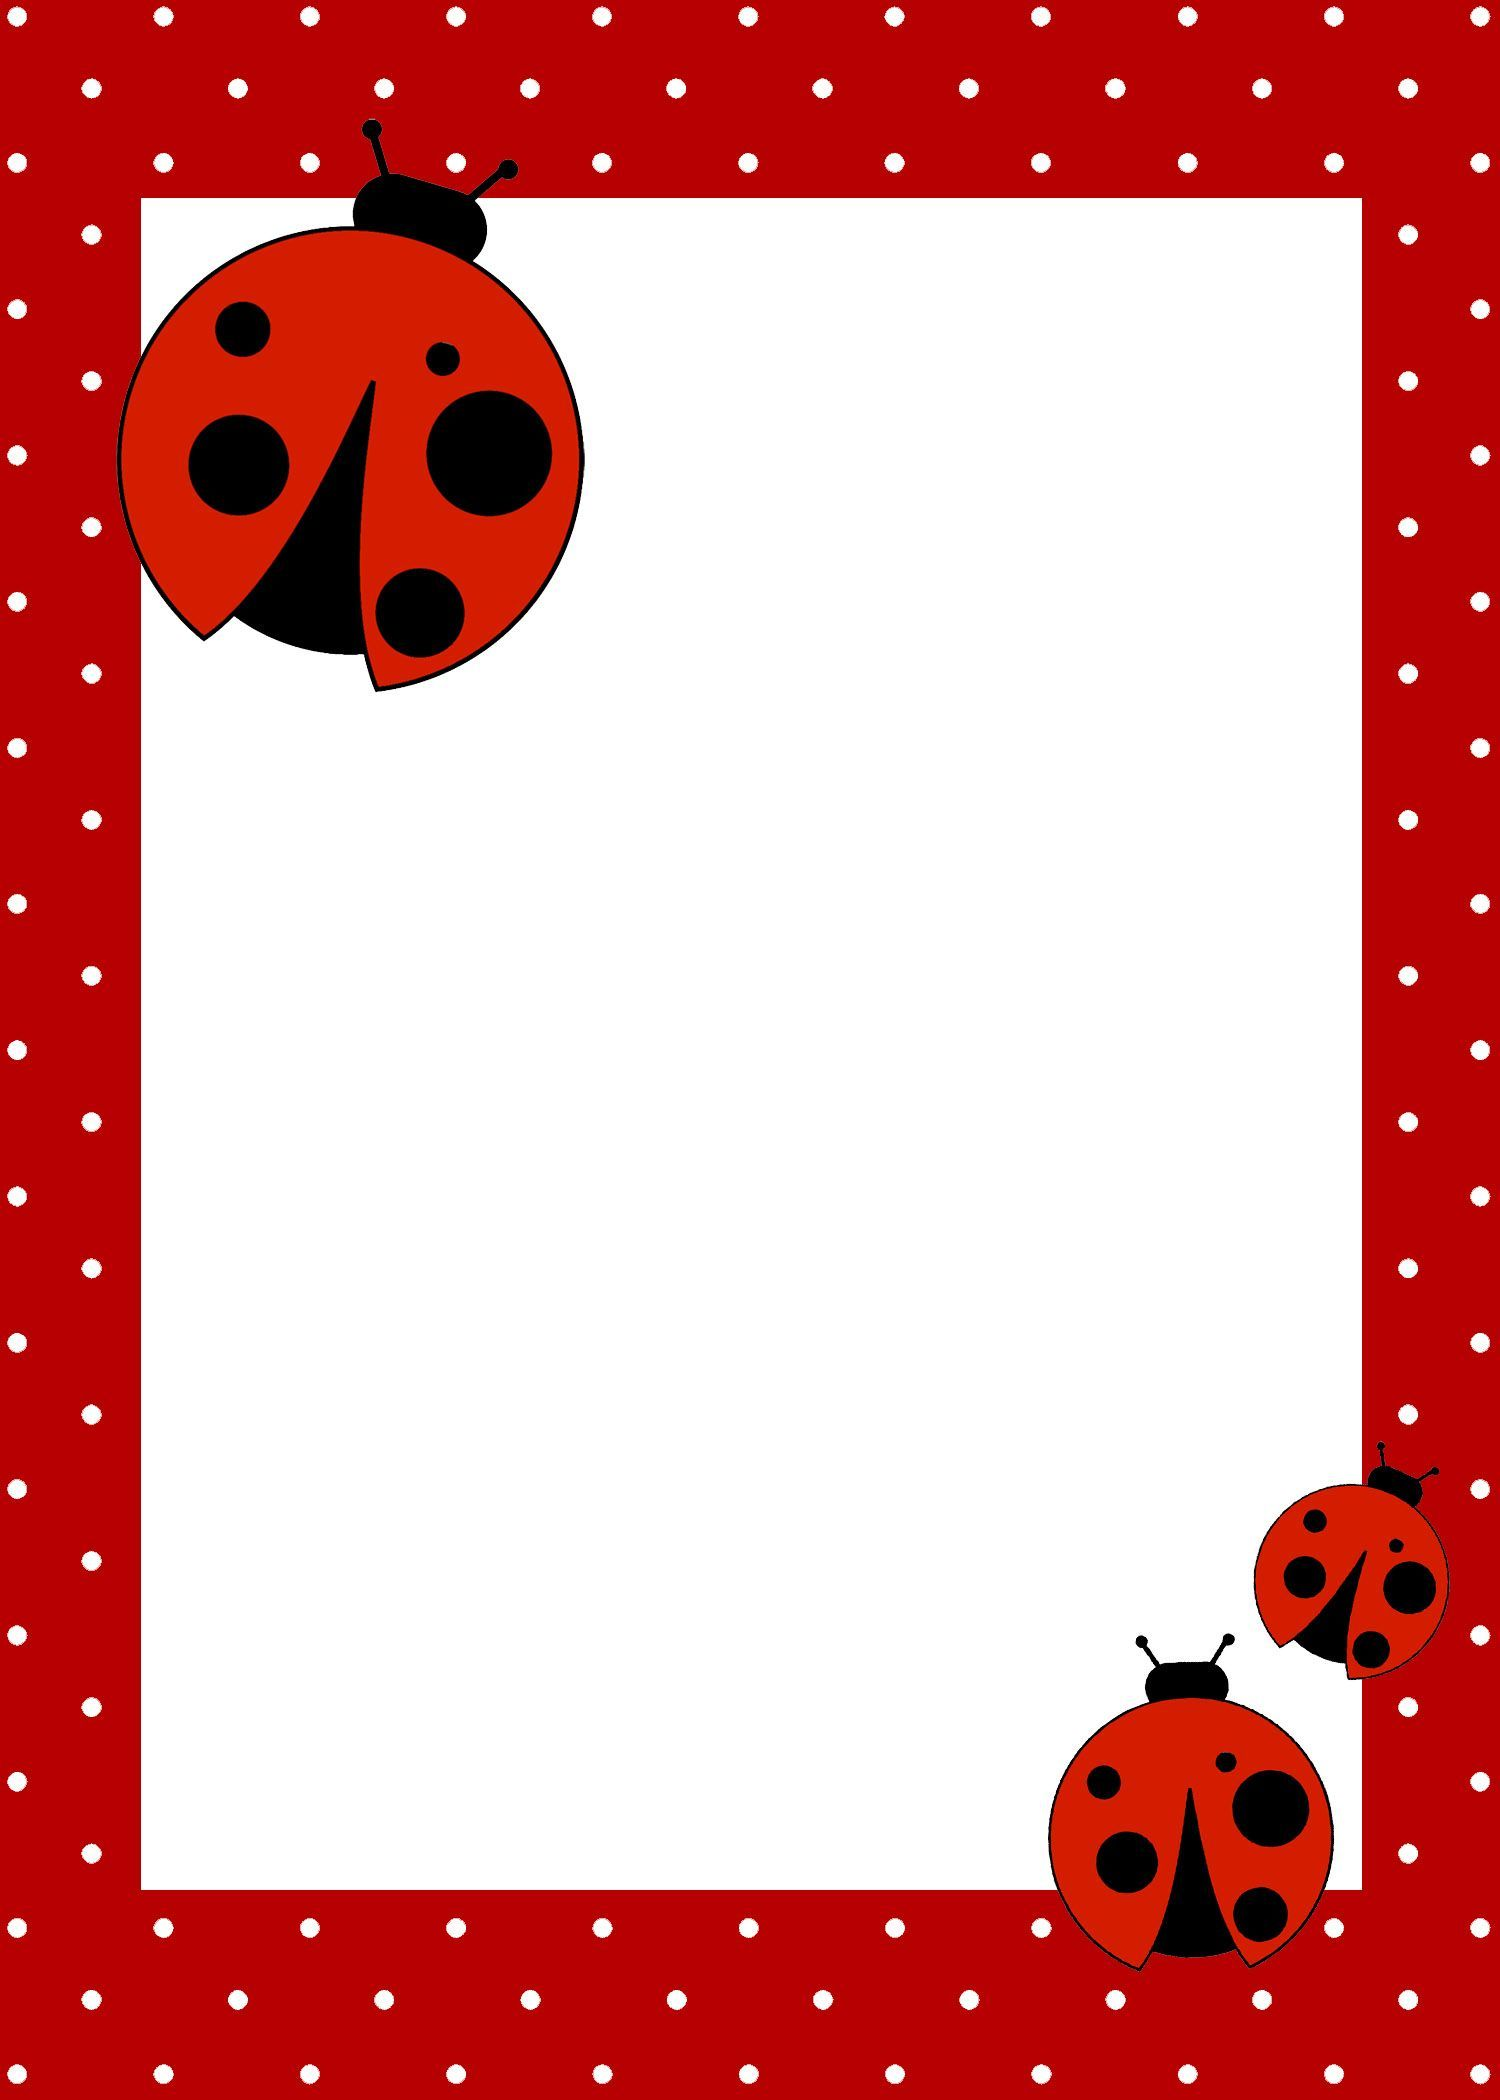 Free Printables Ladybug Birthday Invitation Garland Cupcake Holders Labels Etc From How To